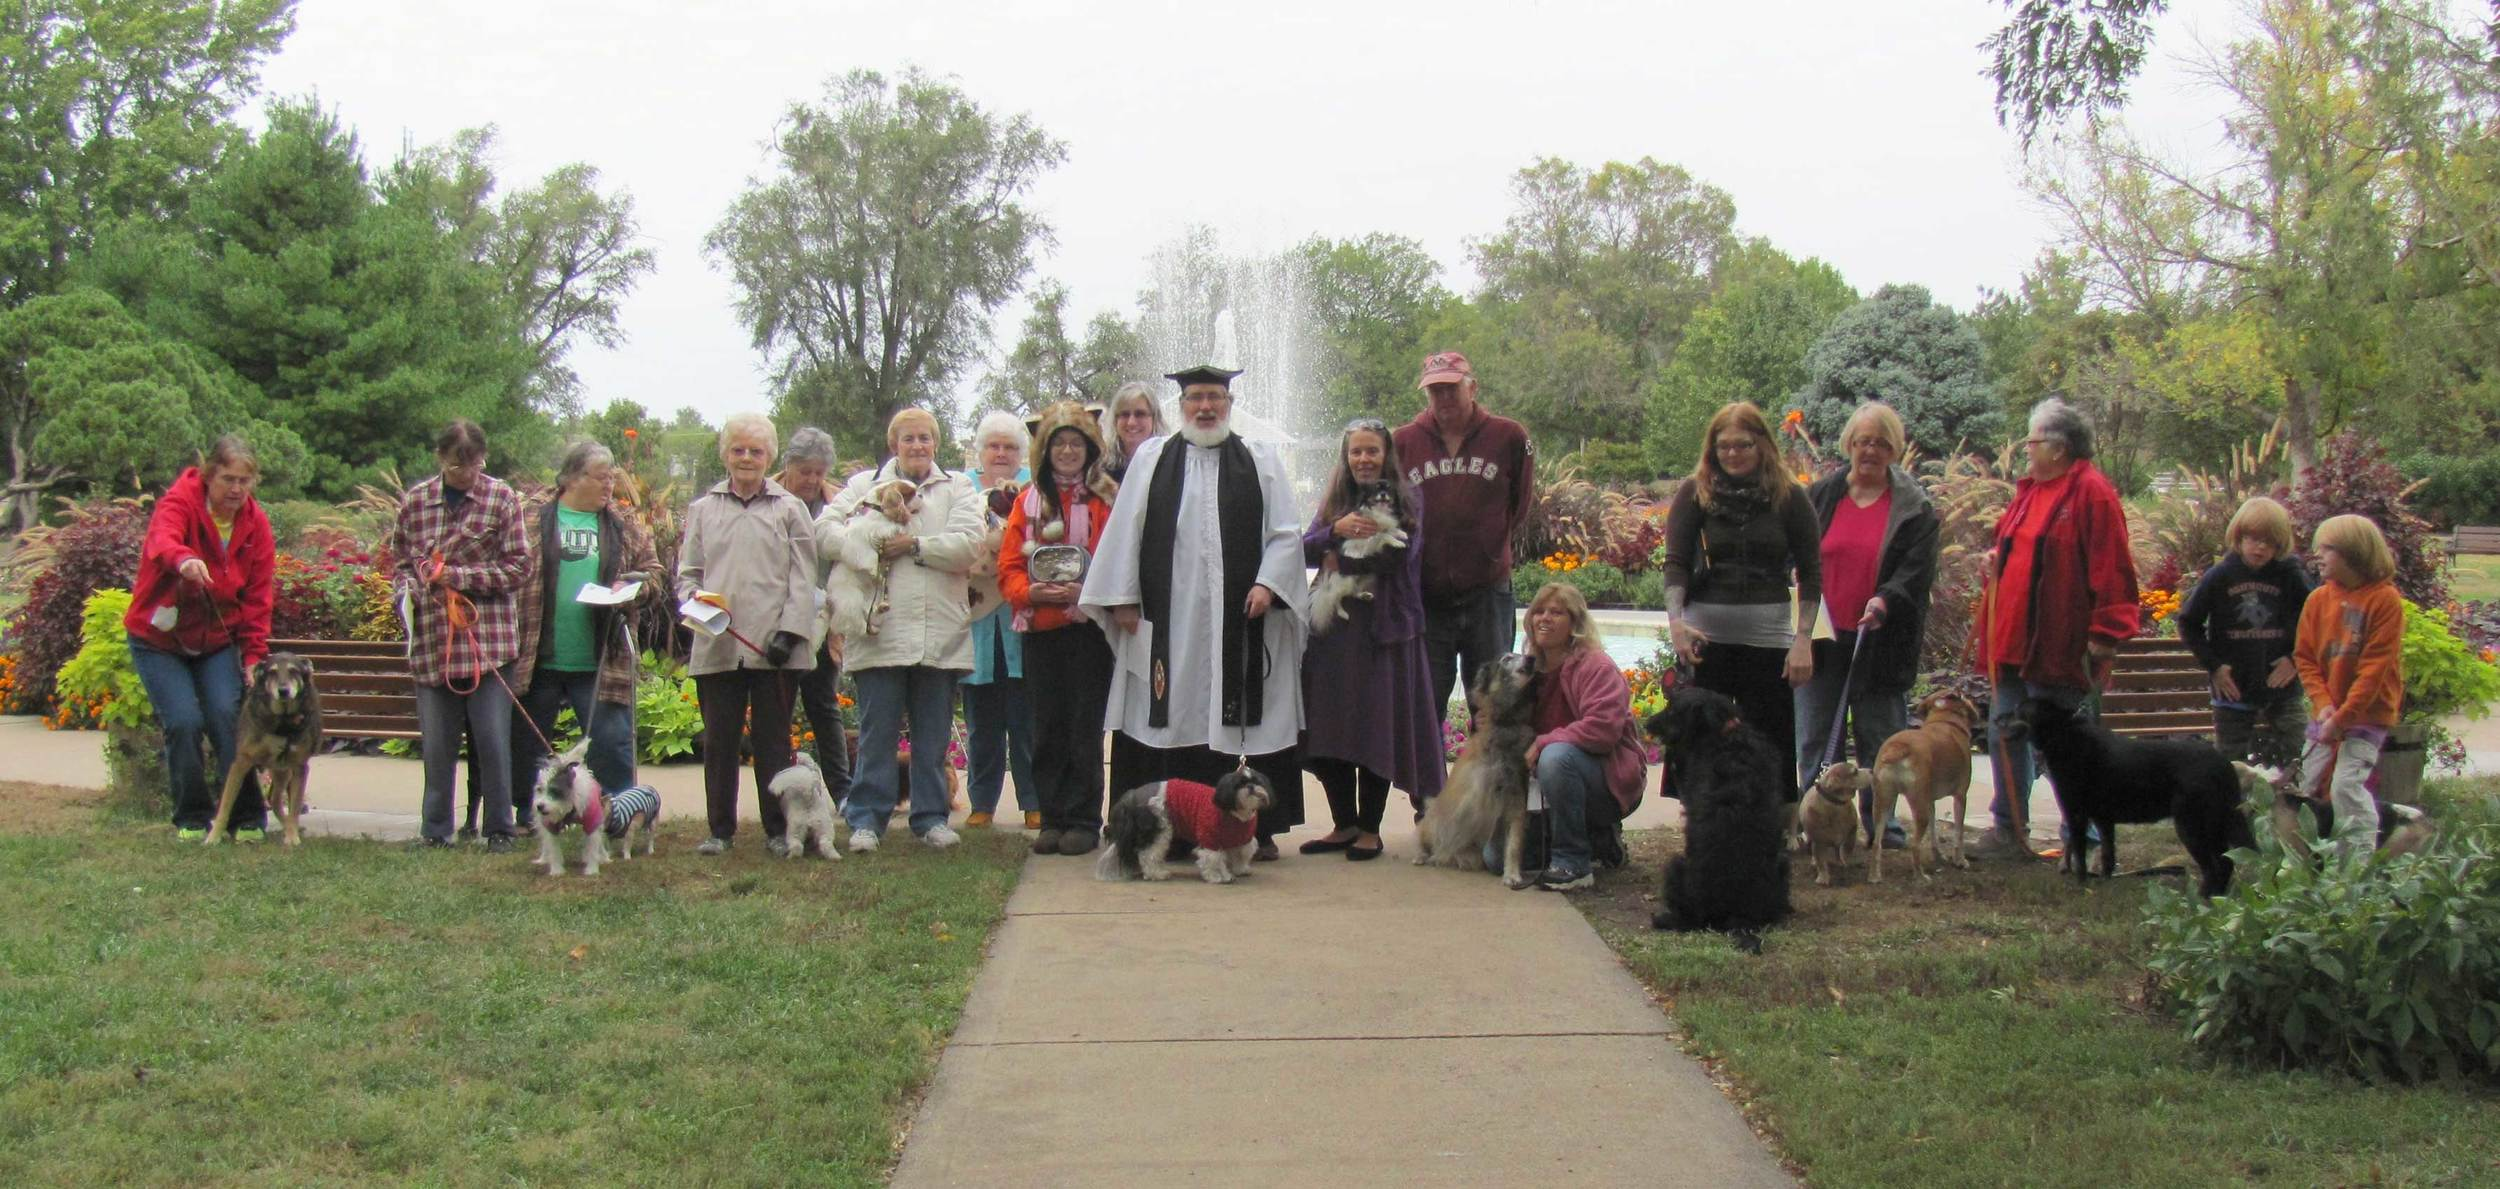 A happy group of pets and their human companions gathered for blessings.